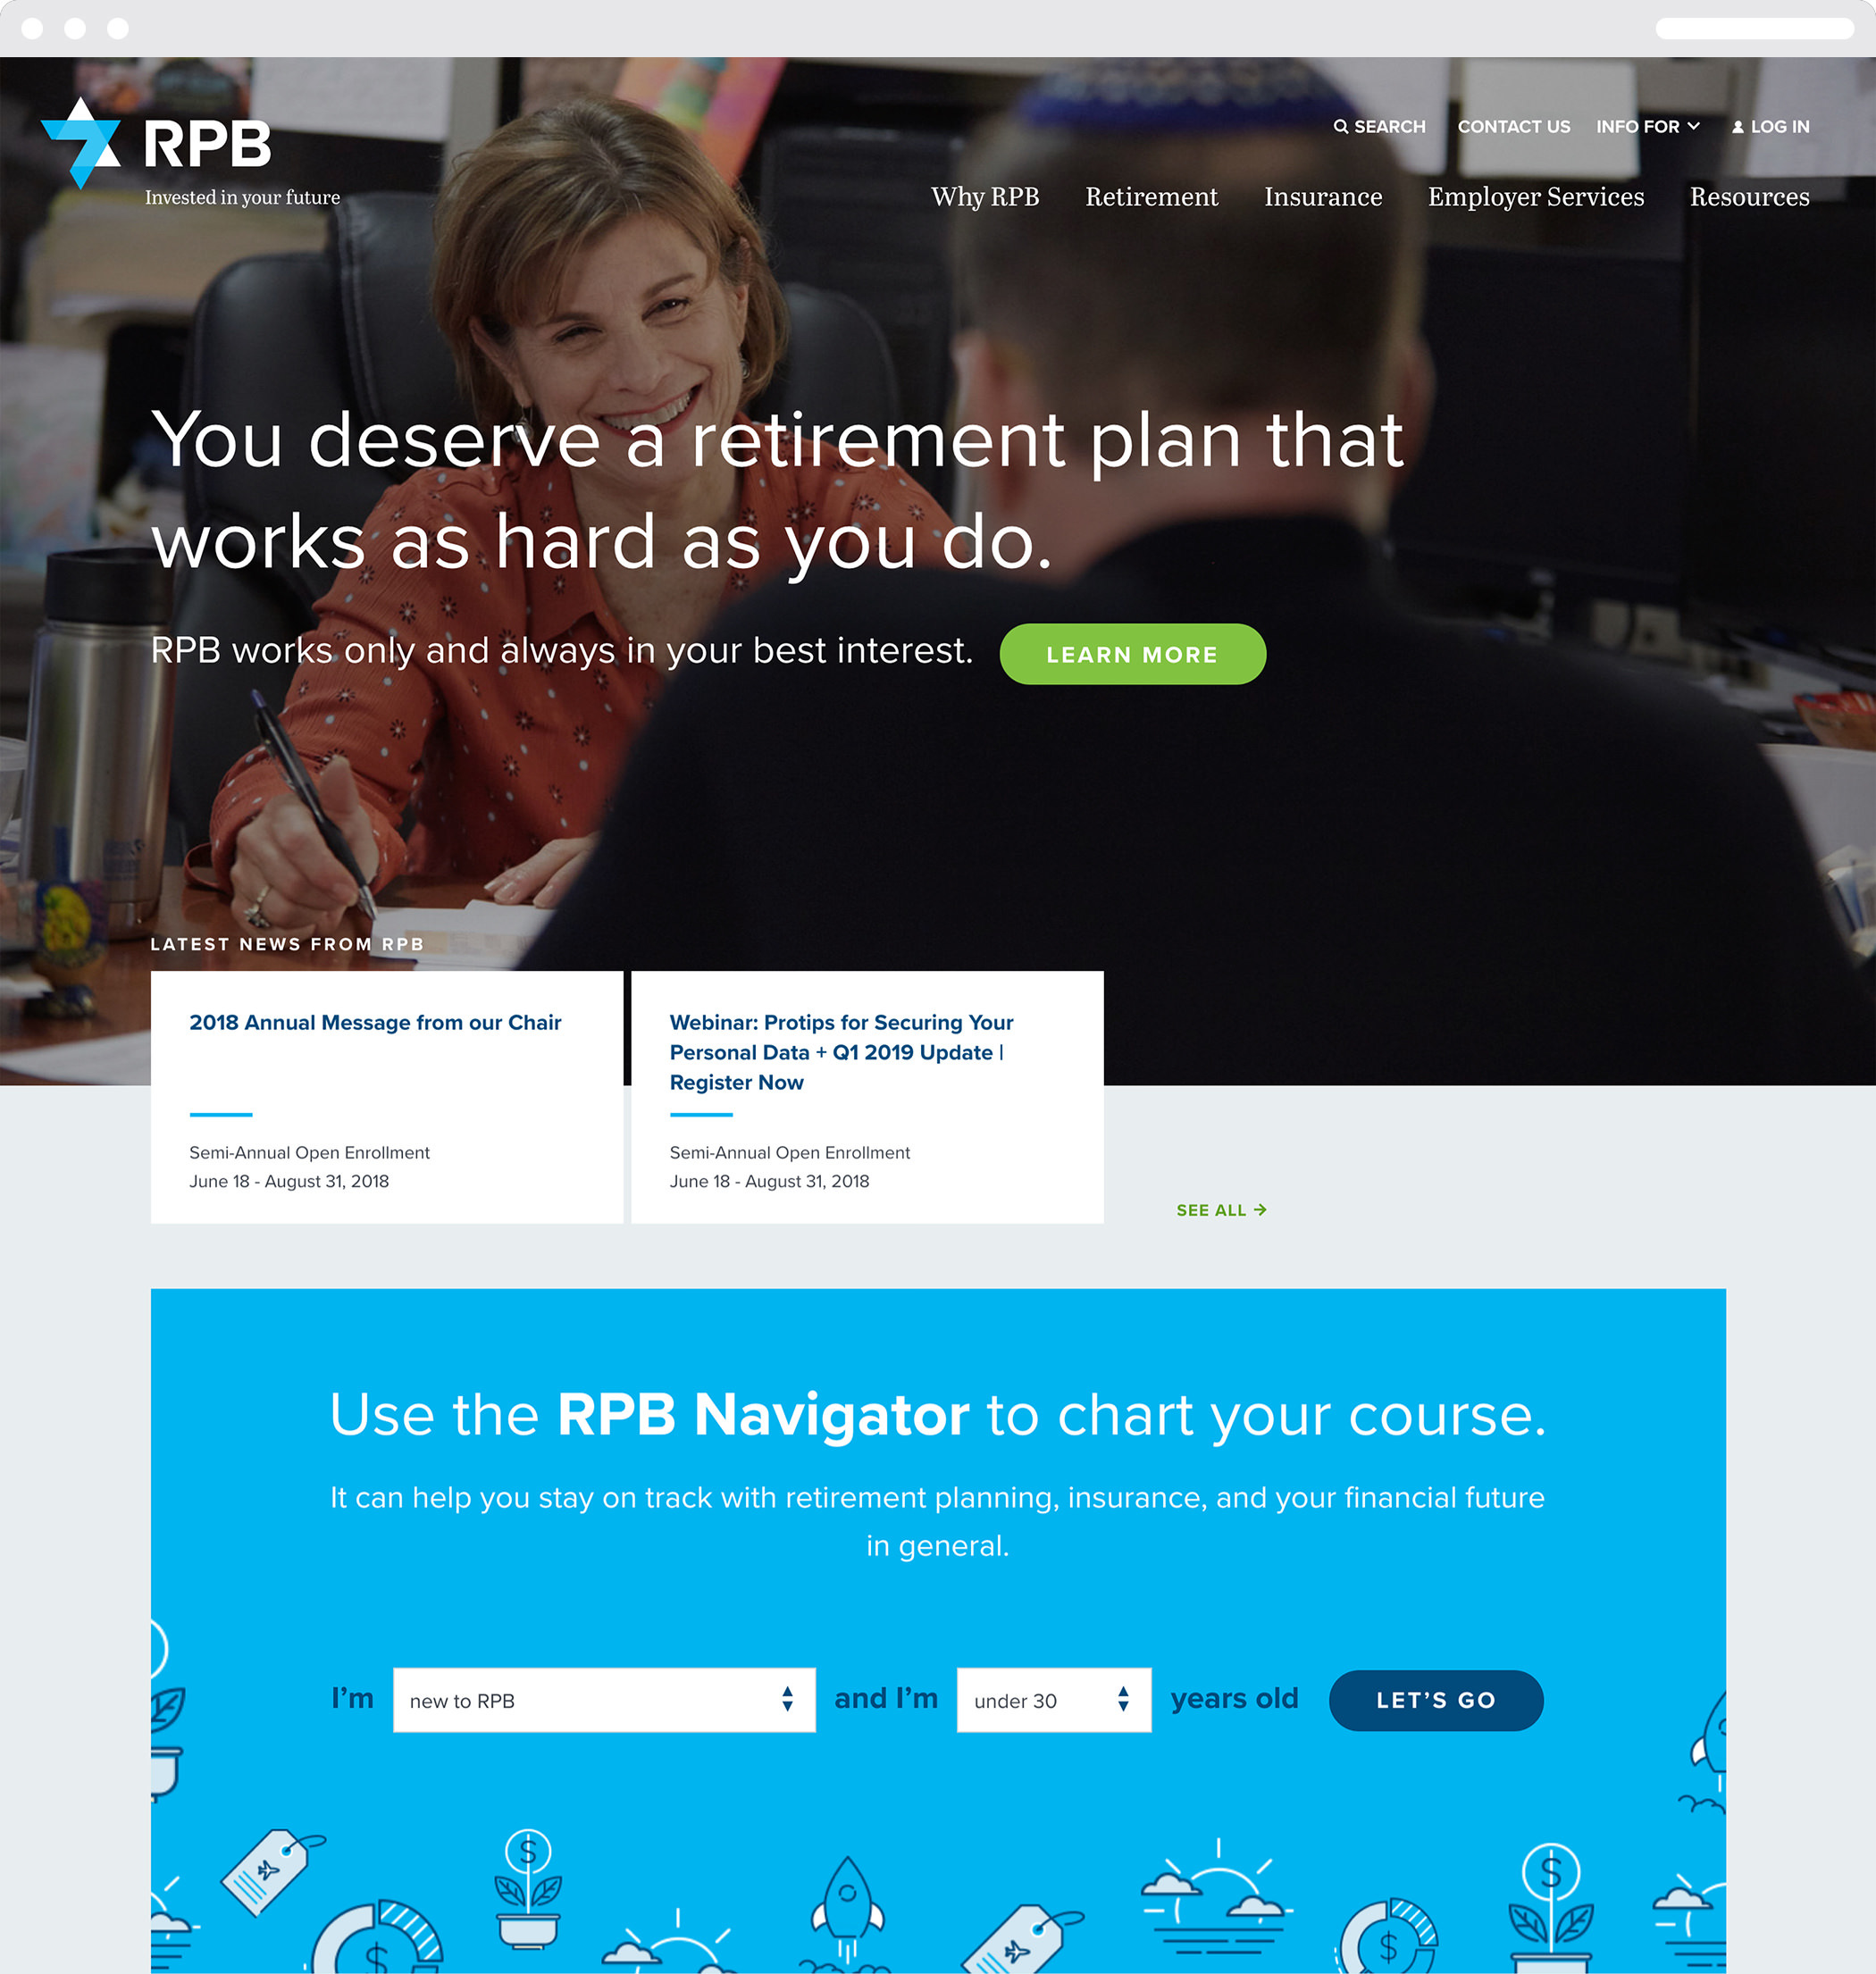 """The RPB homepage featuring two people meeting and the headline """"You deserve a retirement plan that works as hard as you do."""""""